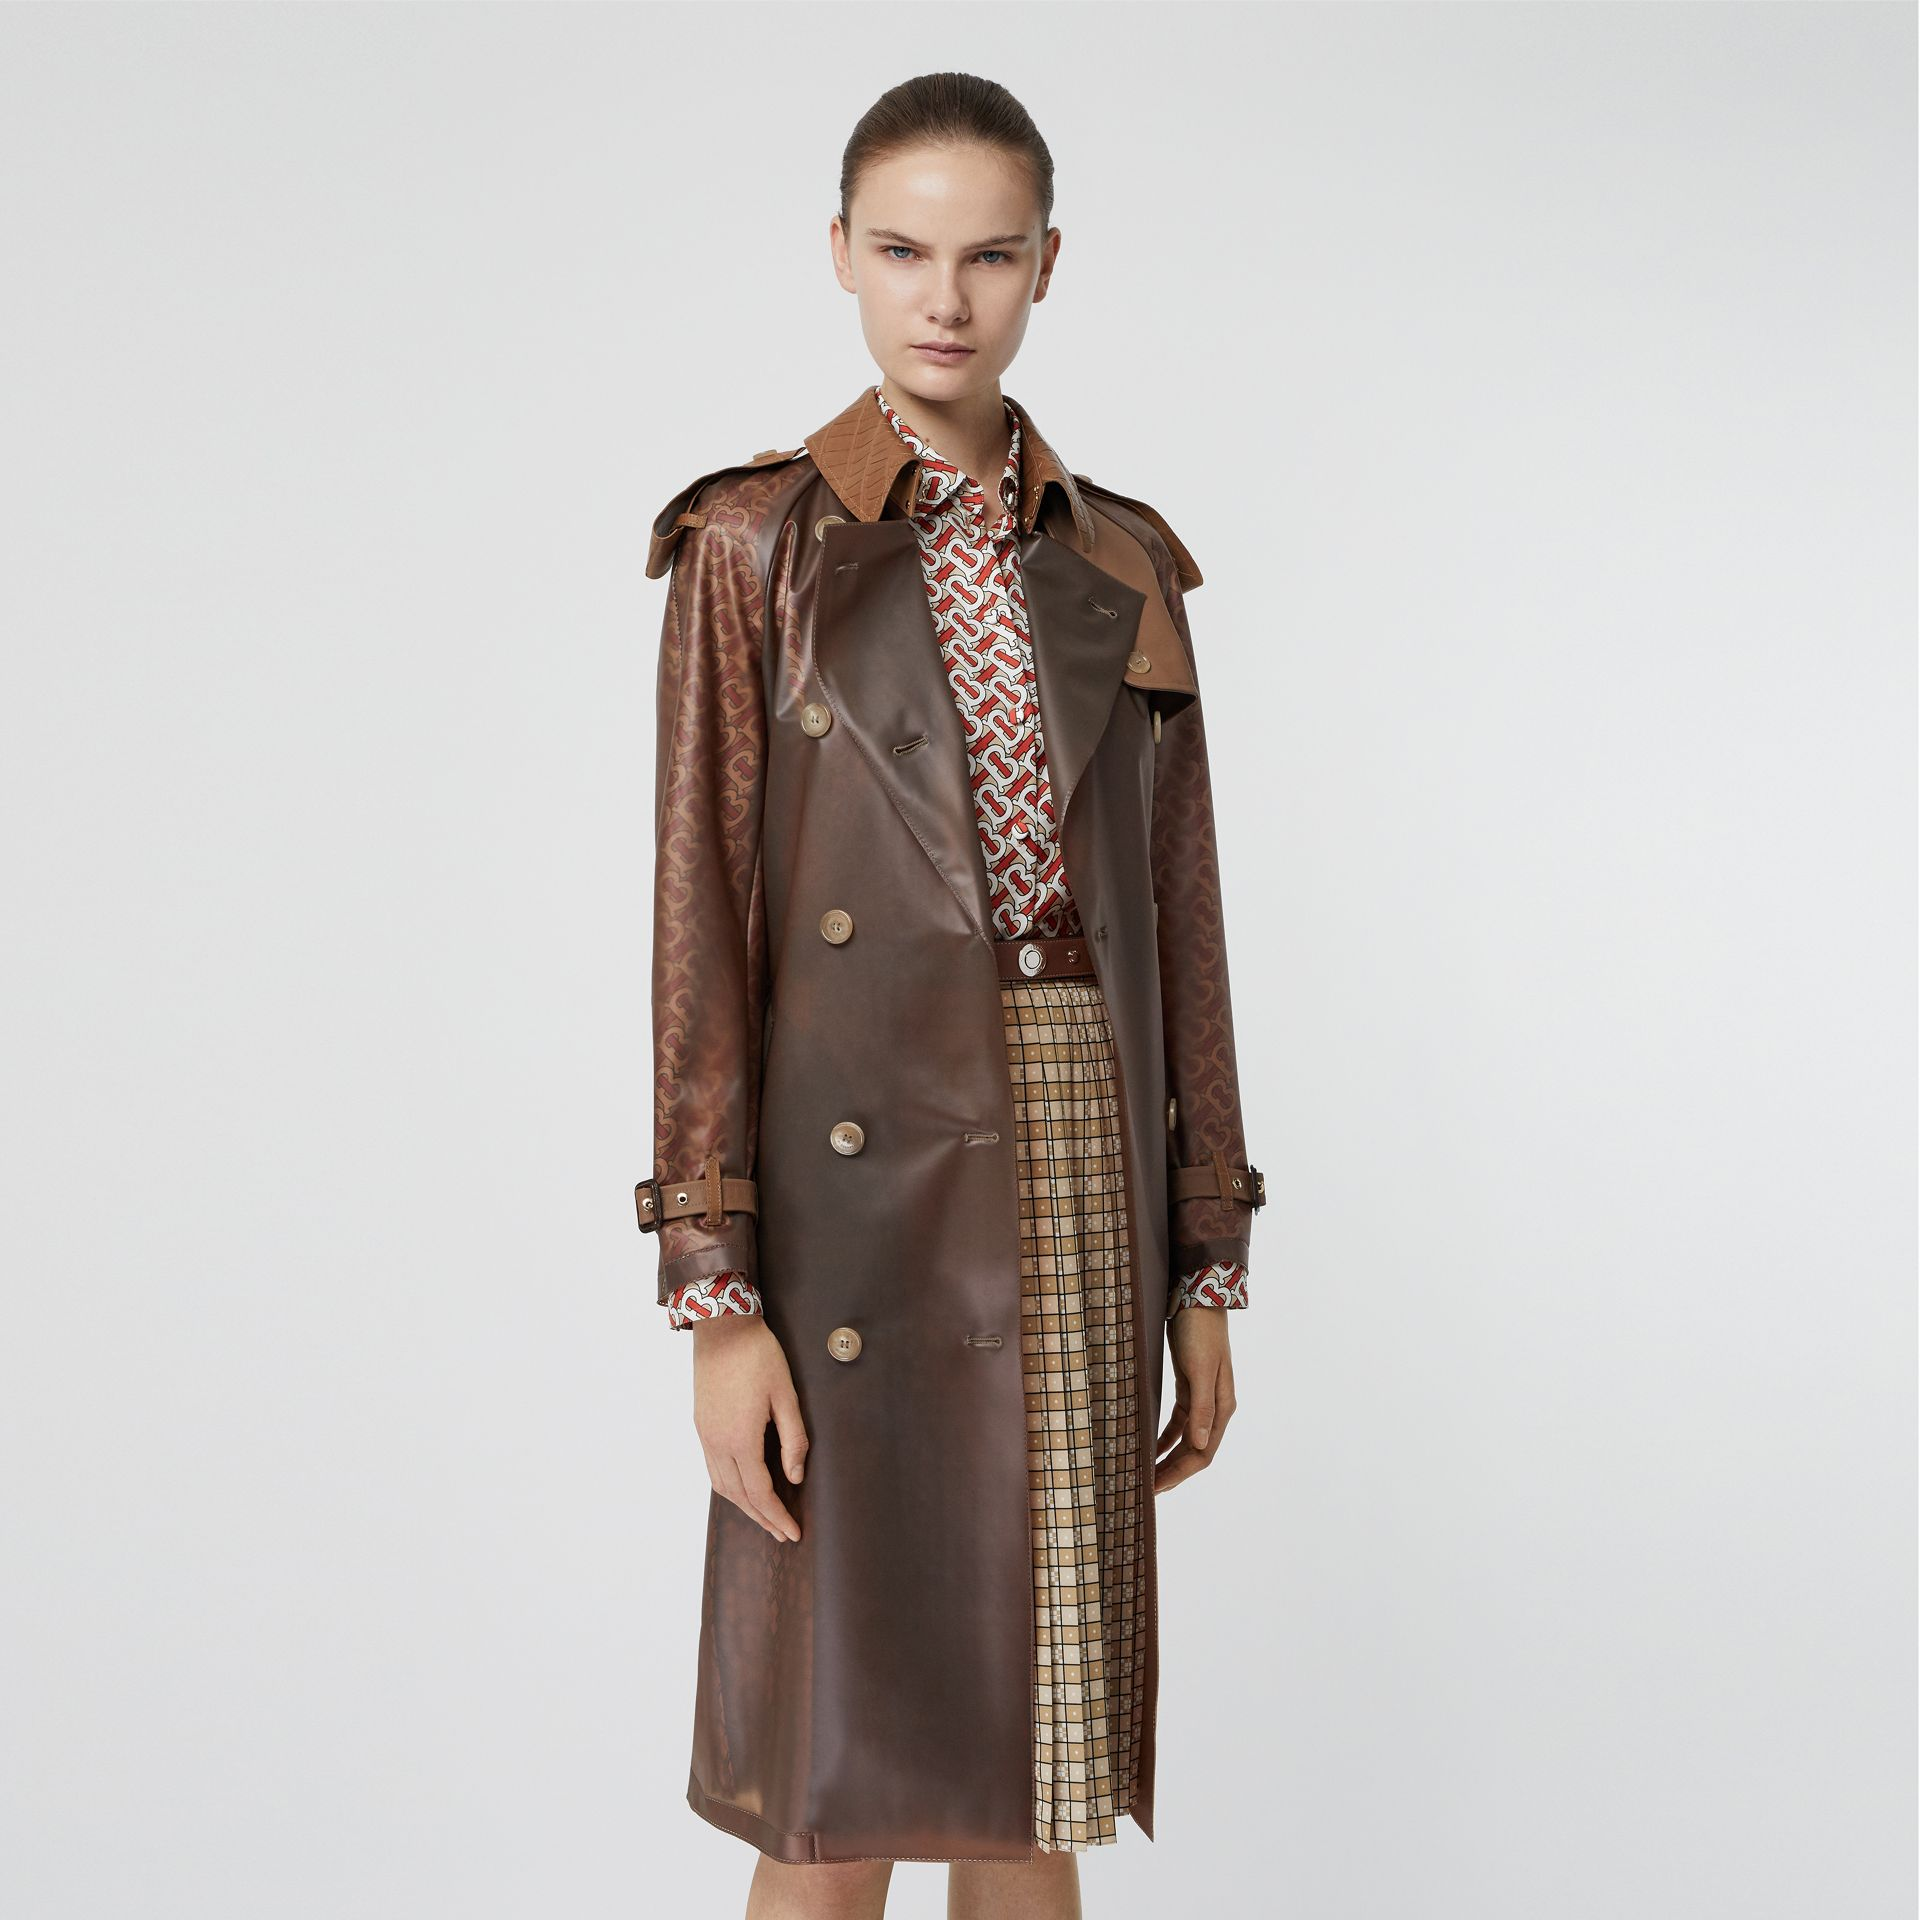 Leather Detail Showerproof Trench Coat in Flaxseed - Women | Burberry United Kingdom - gallery image 6